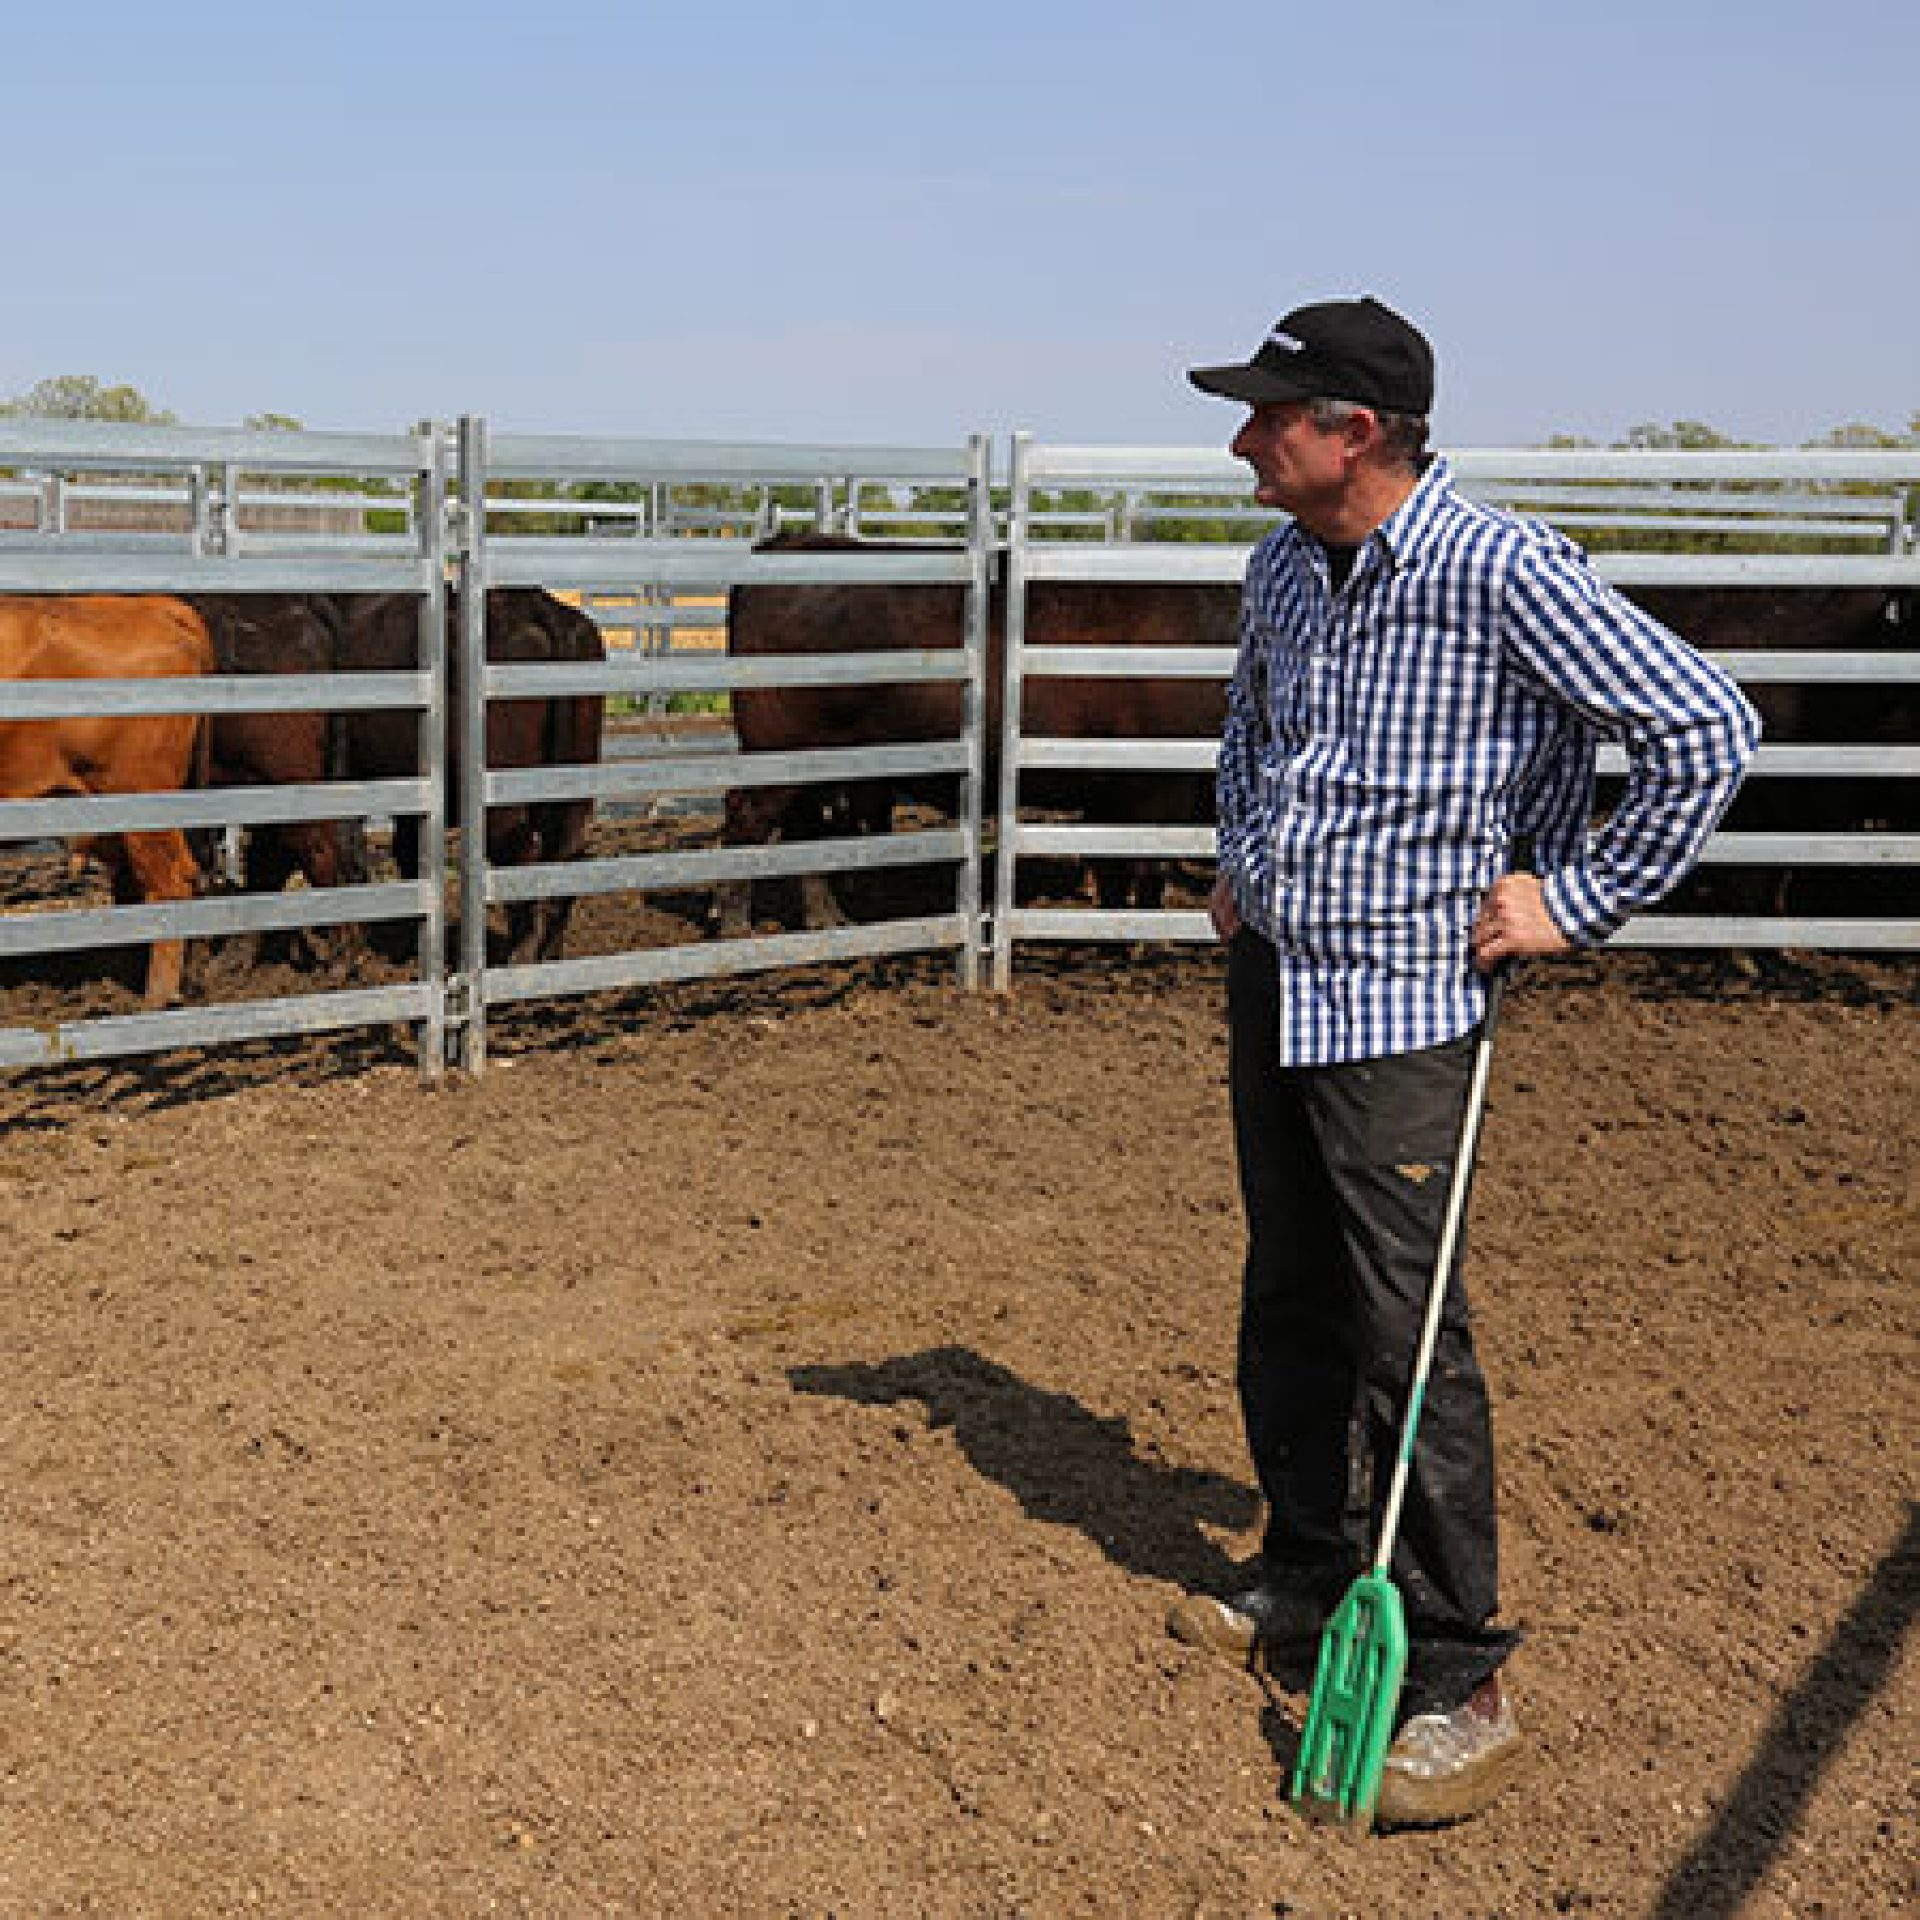 Man standing looking at cattle through panels